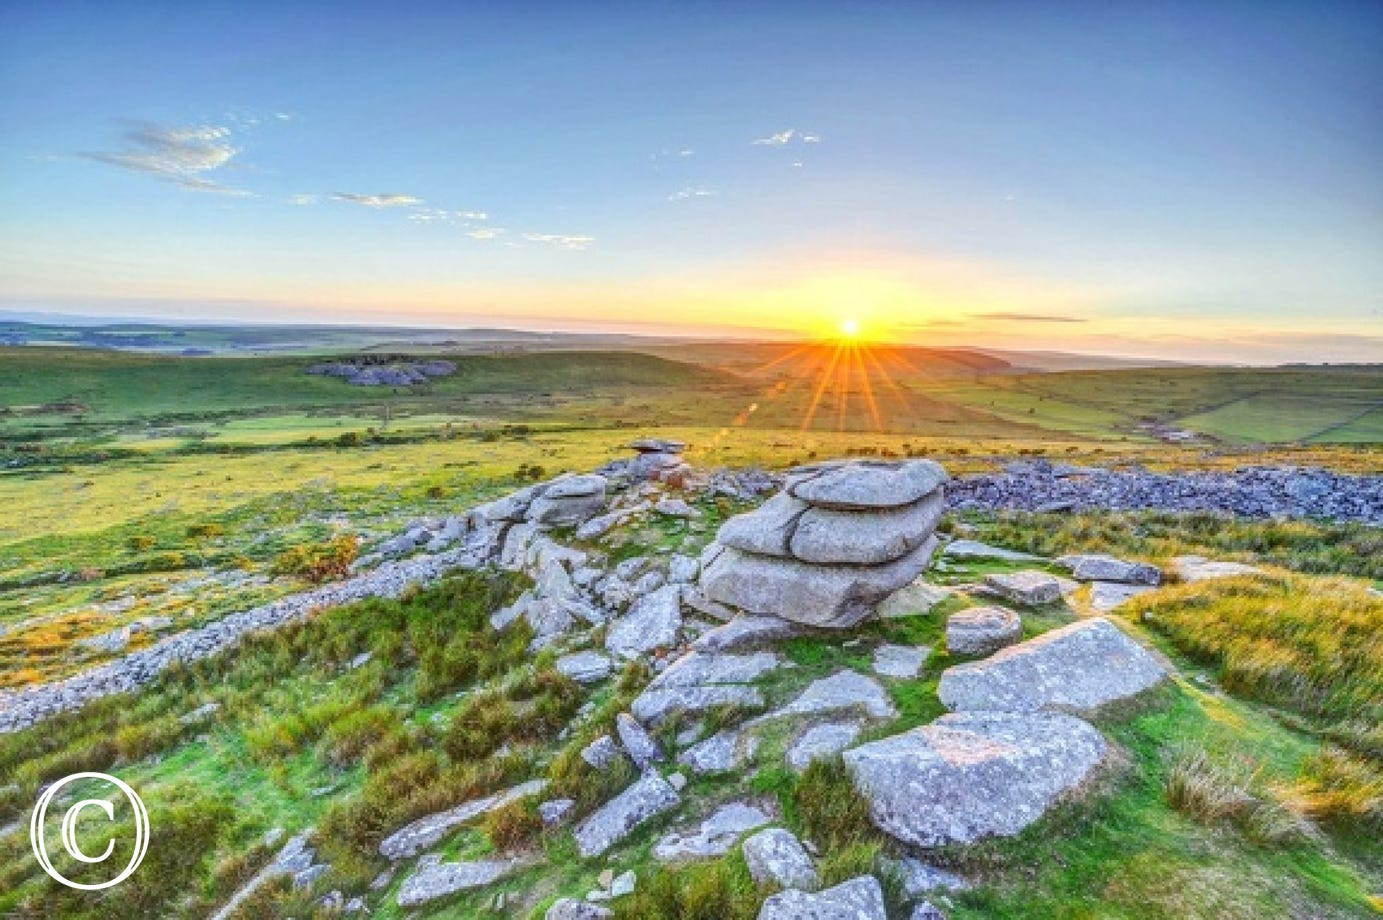 Nearby Bodmin Moor - a walker's paradise